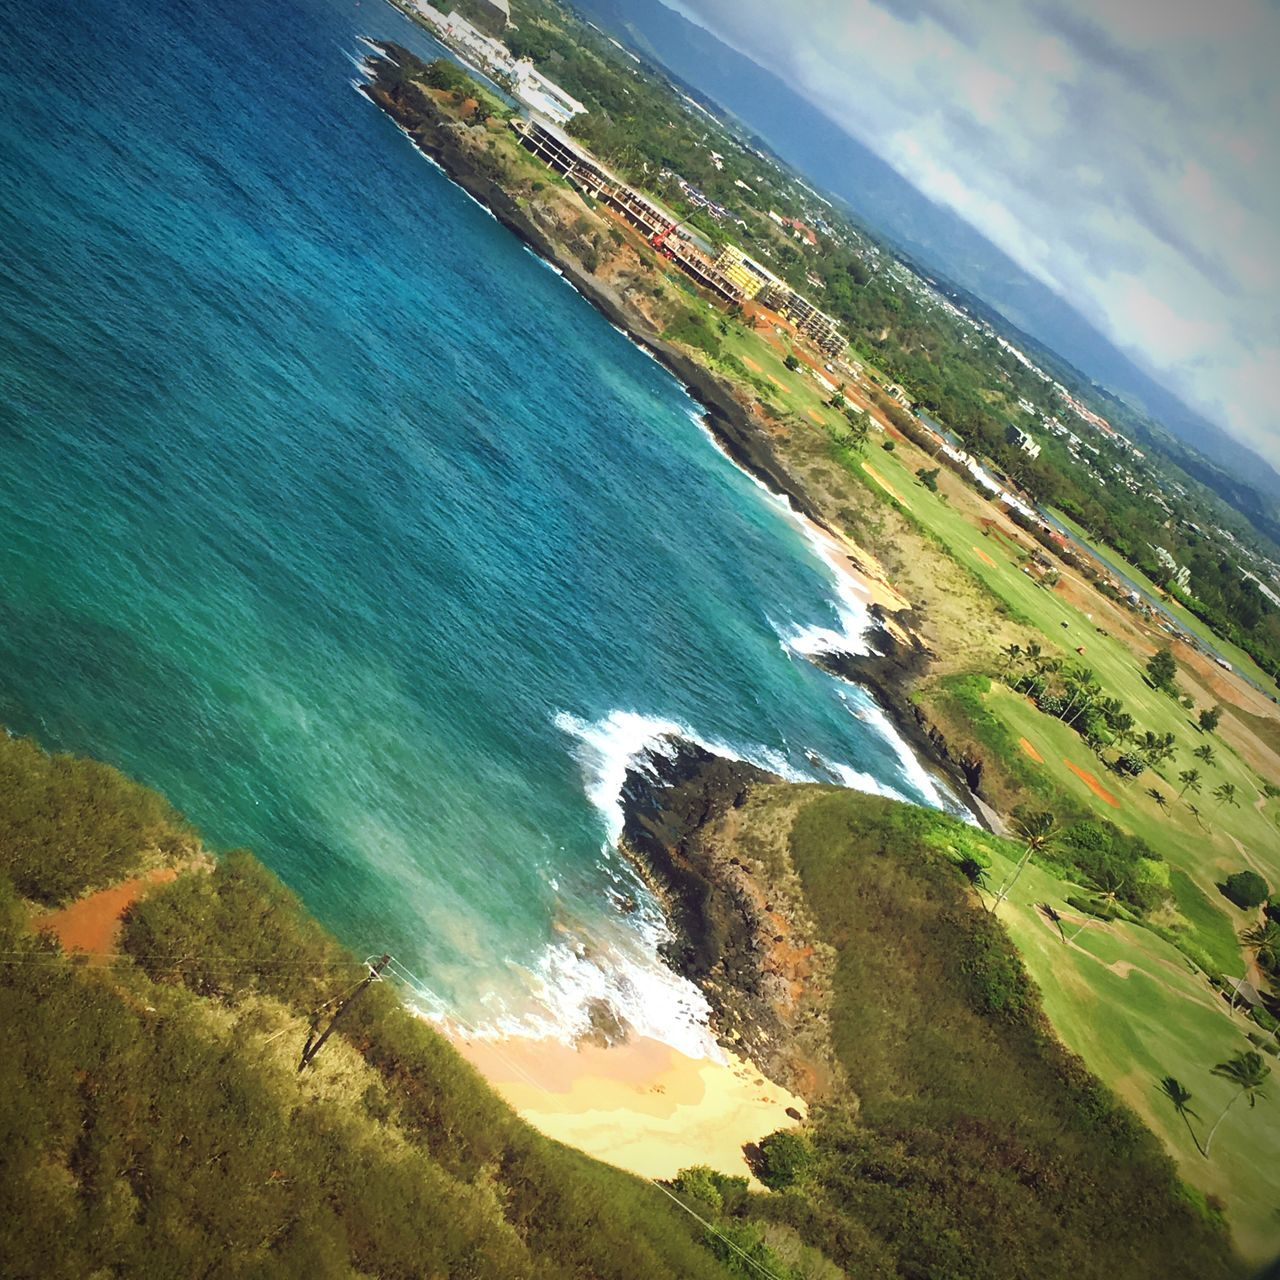 Home.. ❤️ A Bird's Eye View Home Kauai Airplane View Sky Ocean Island Life Coastline Shore Scenics High Angle View Vacations Eye4photography  EyeEm Best Shots Sky And Clouds Calm Hawaii Photography Paradise Transportation Birds Eye View Aloha World Landscape